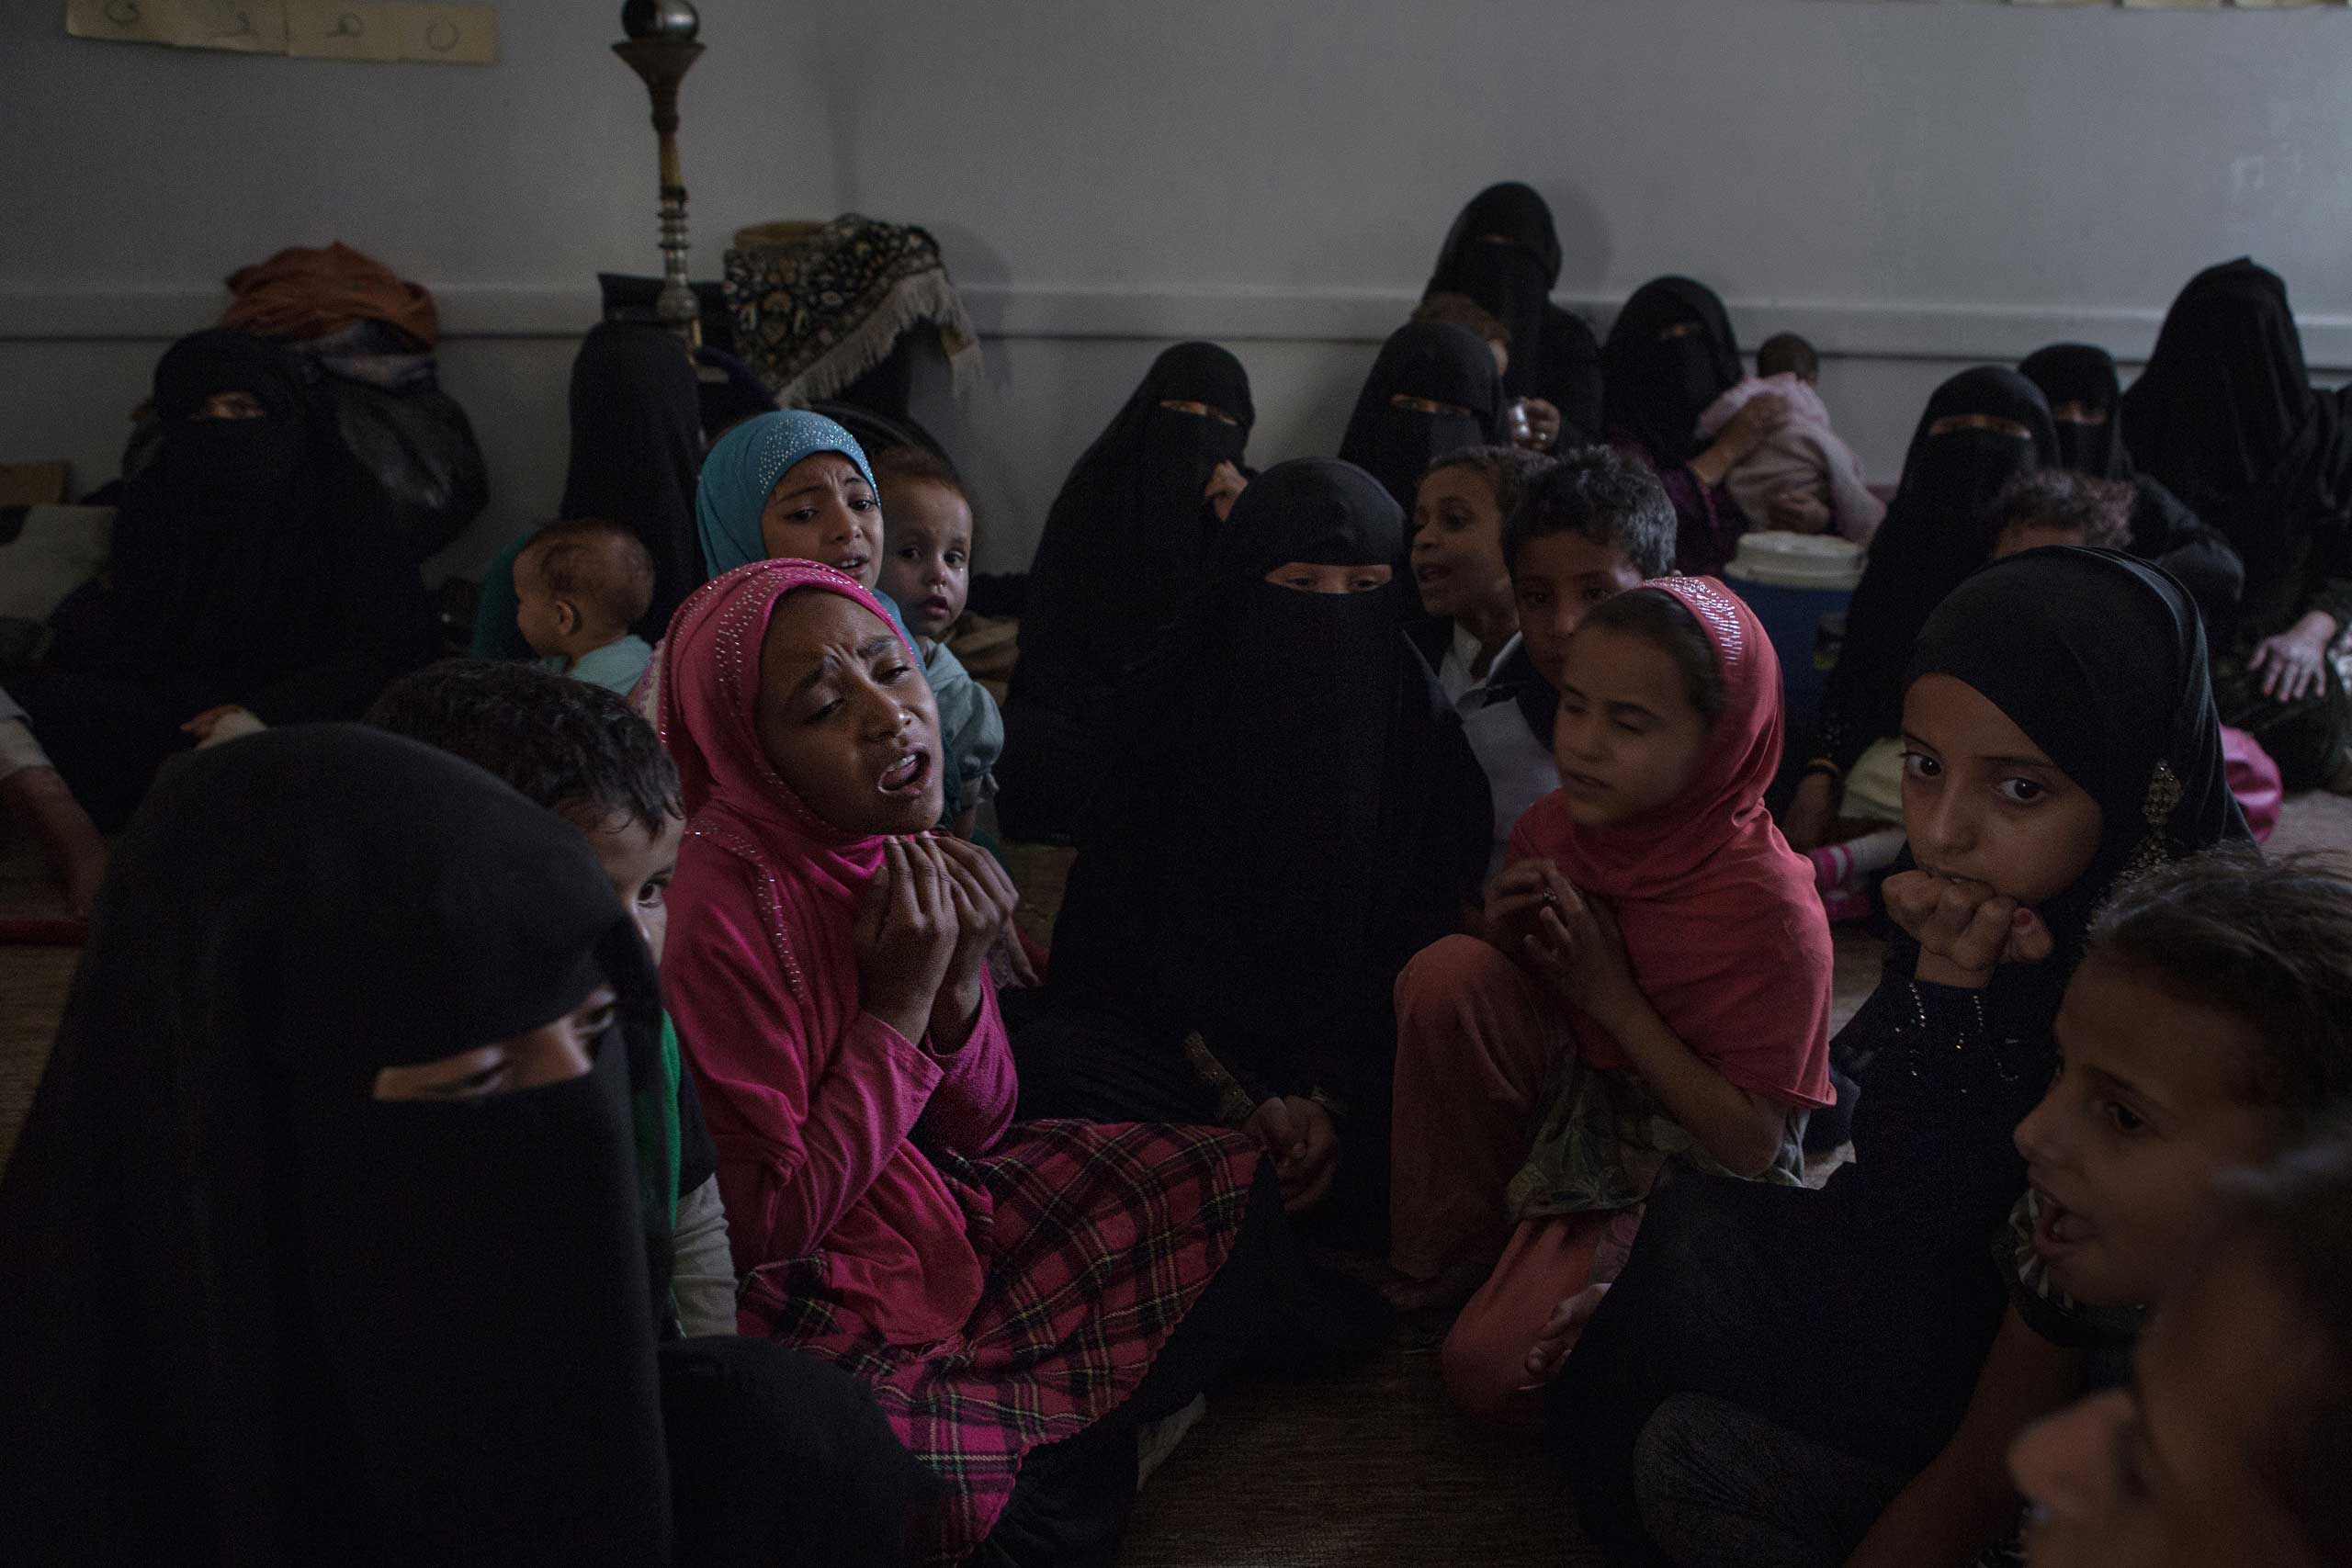 Children displaced  from fighting in Saada in northern Yemen sing songs about their homeland. They have found refuge in a school in the capital city of Sanaa, Aug. 23, 2015.